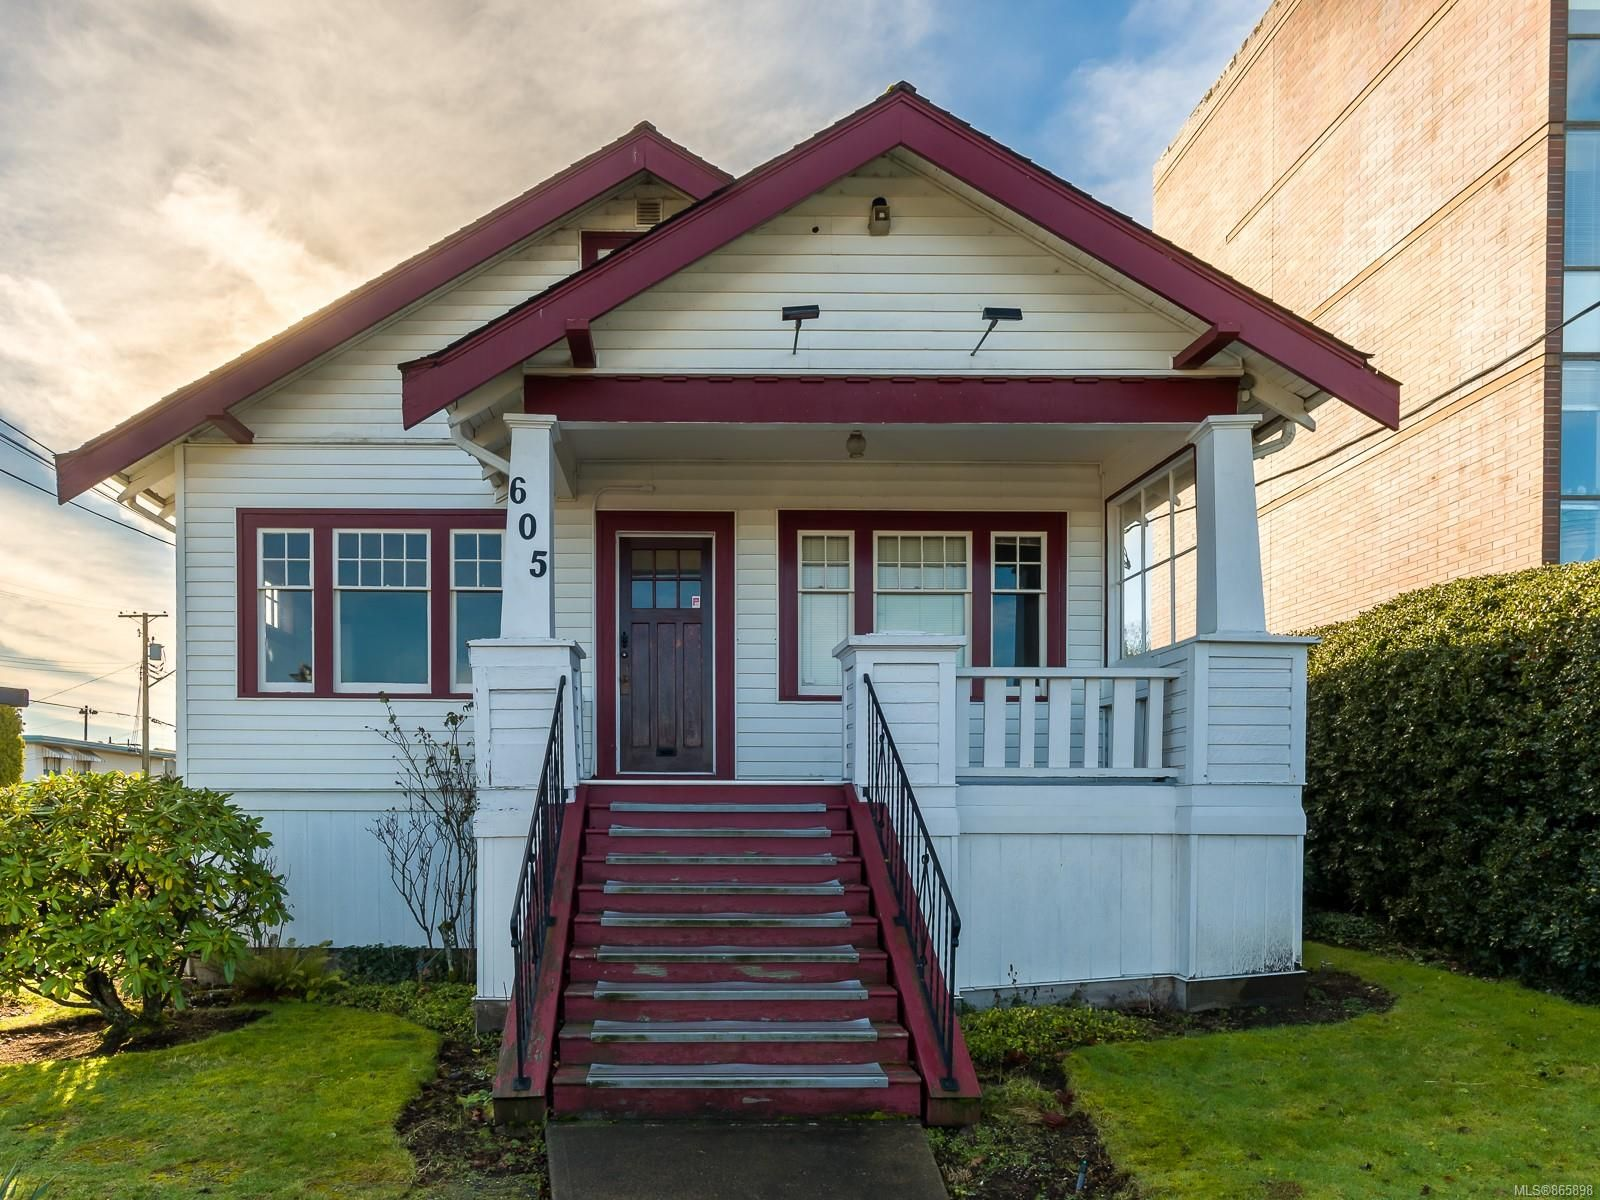 Main Photo: 605 Comox Rd in : Na Old City Mixed Use for sale (Nanaimo)  : MLS®# 865898